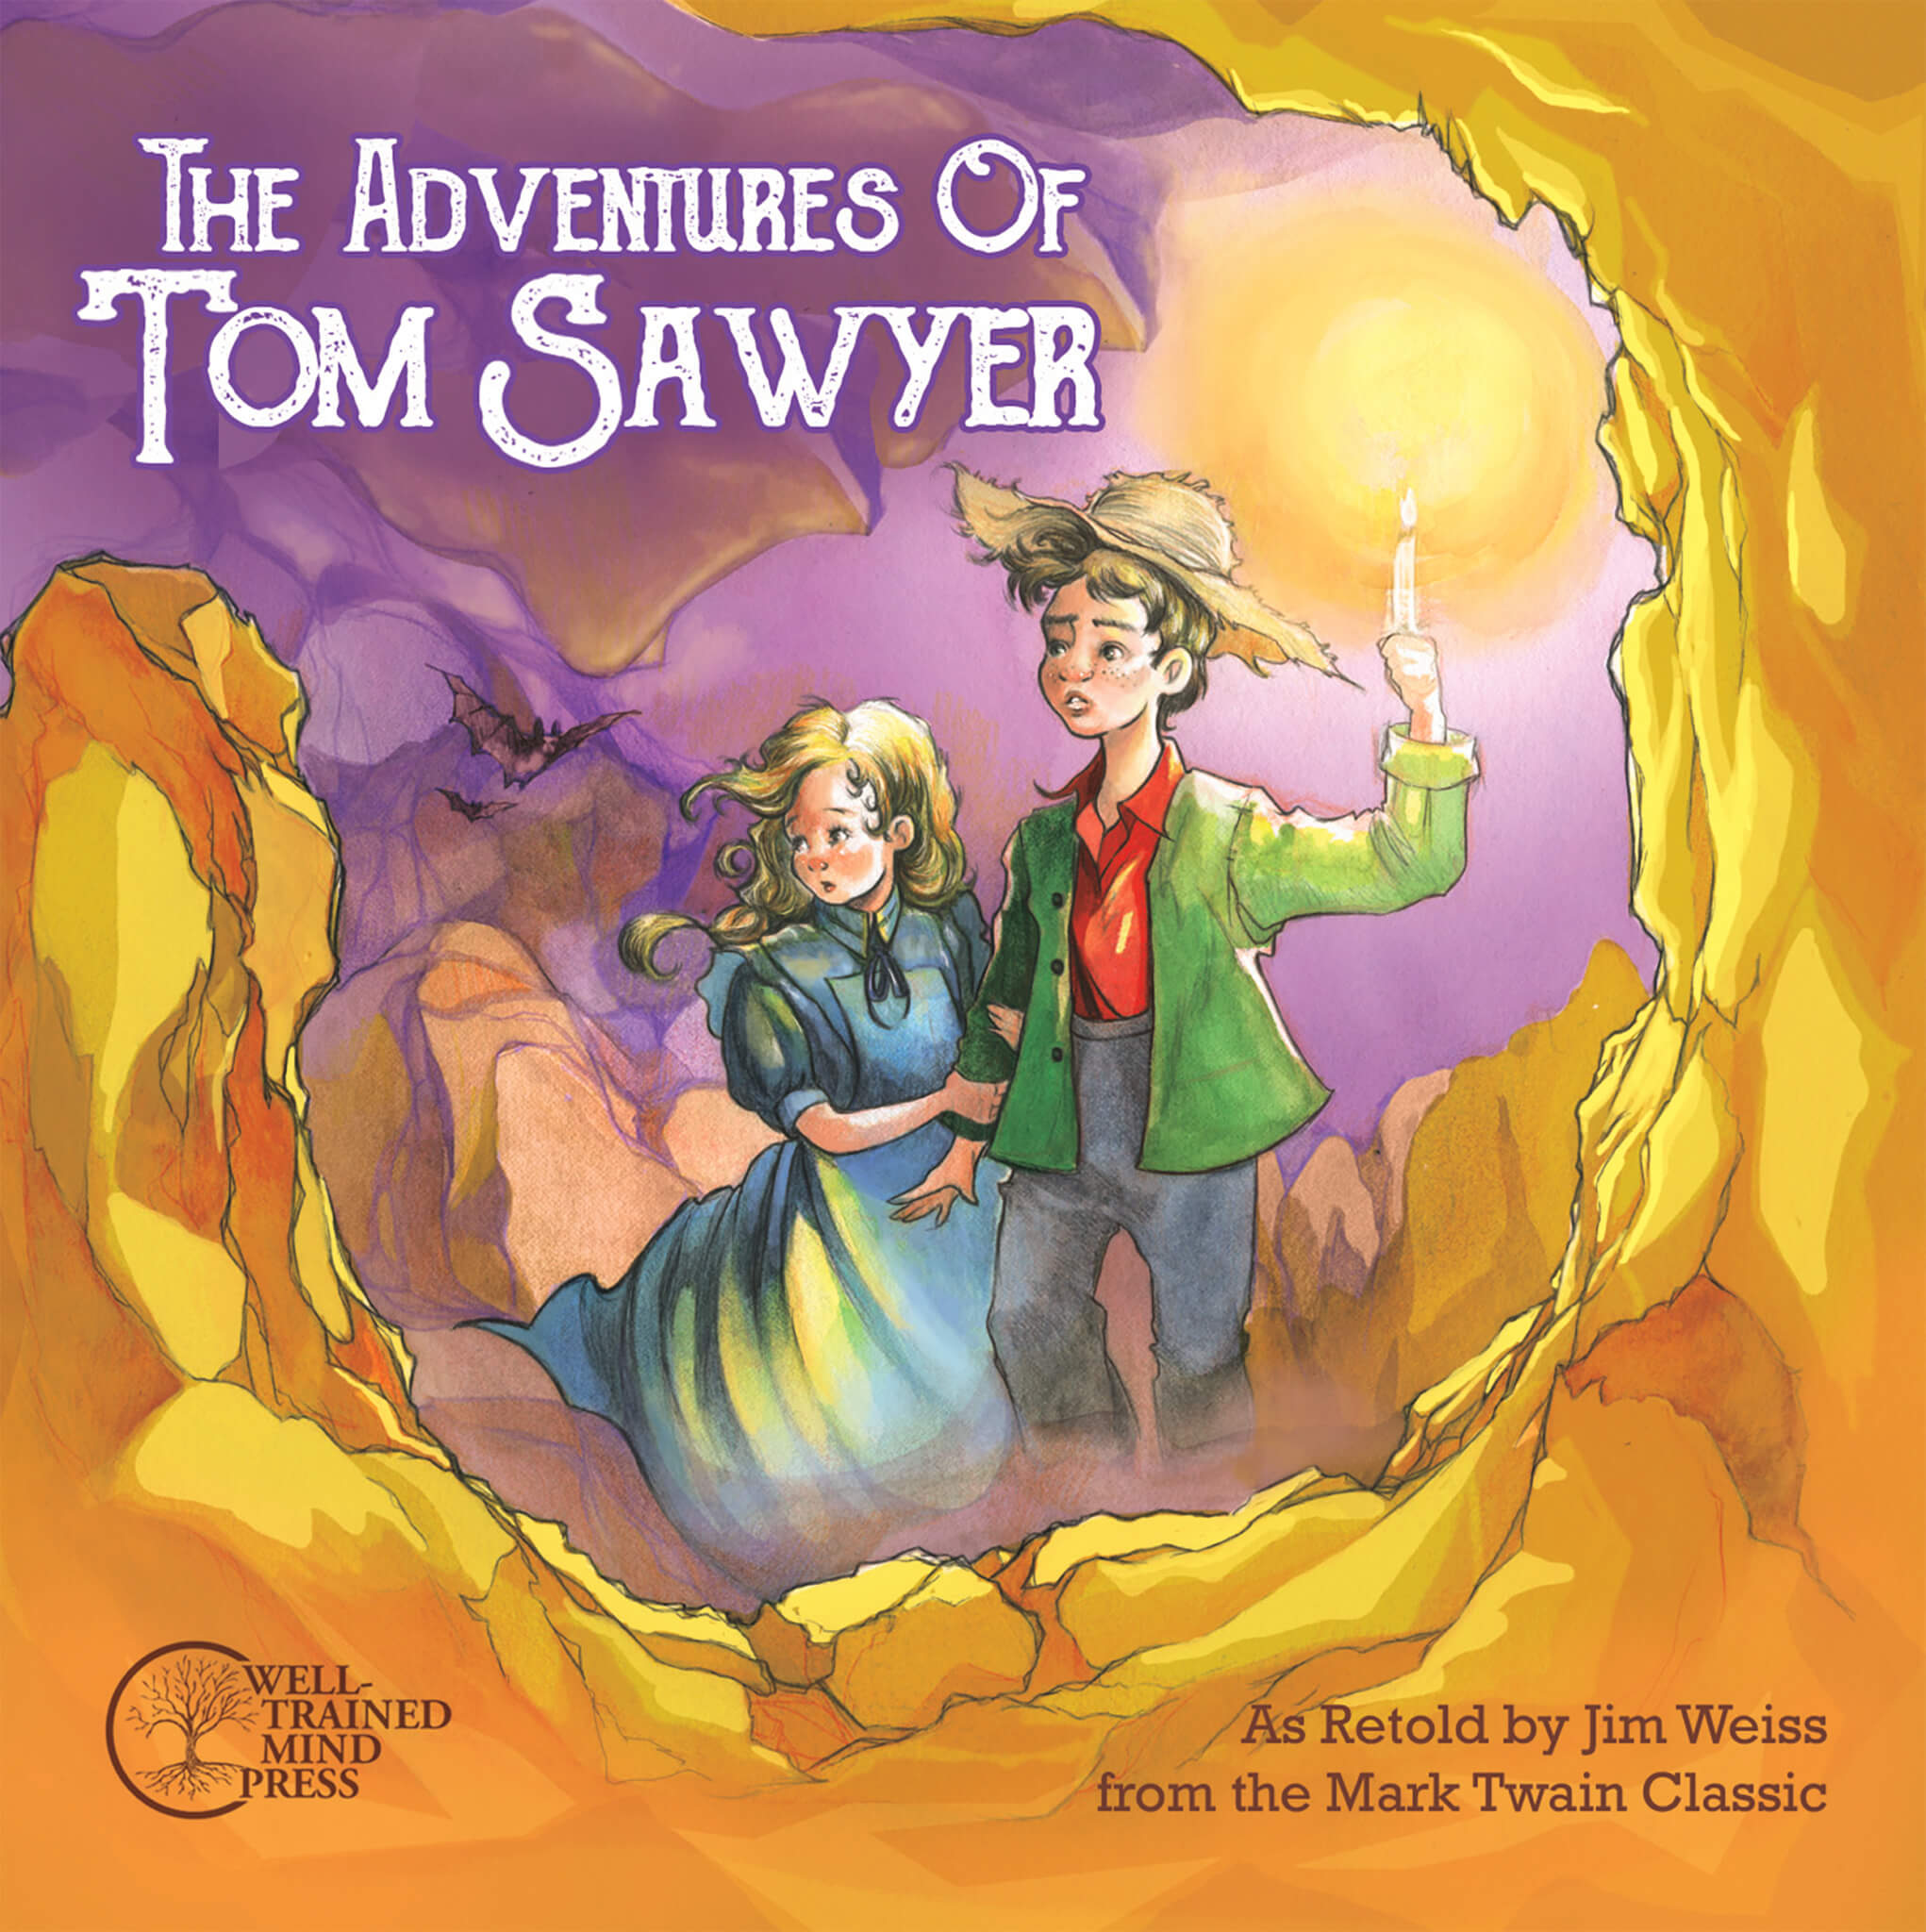 The Adventures of Tom Sawyer - Well-Trained Mind